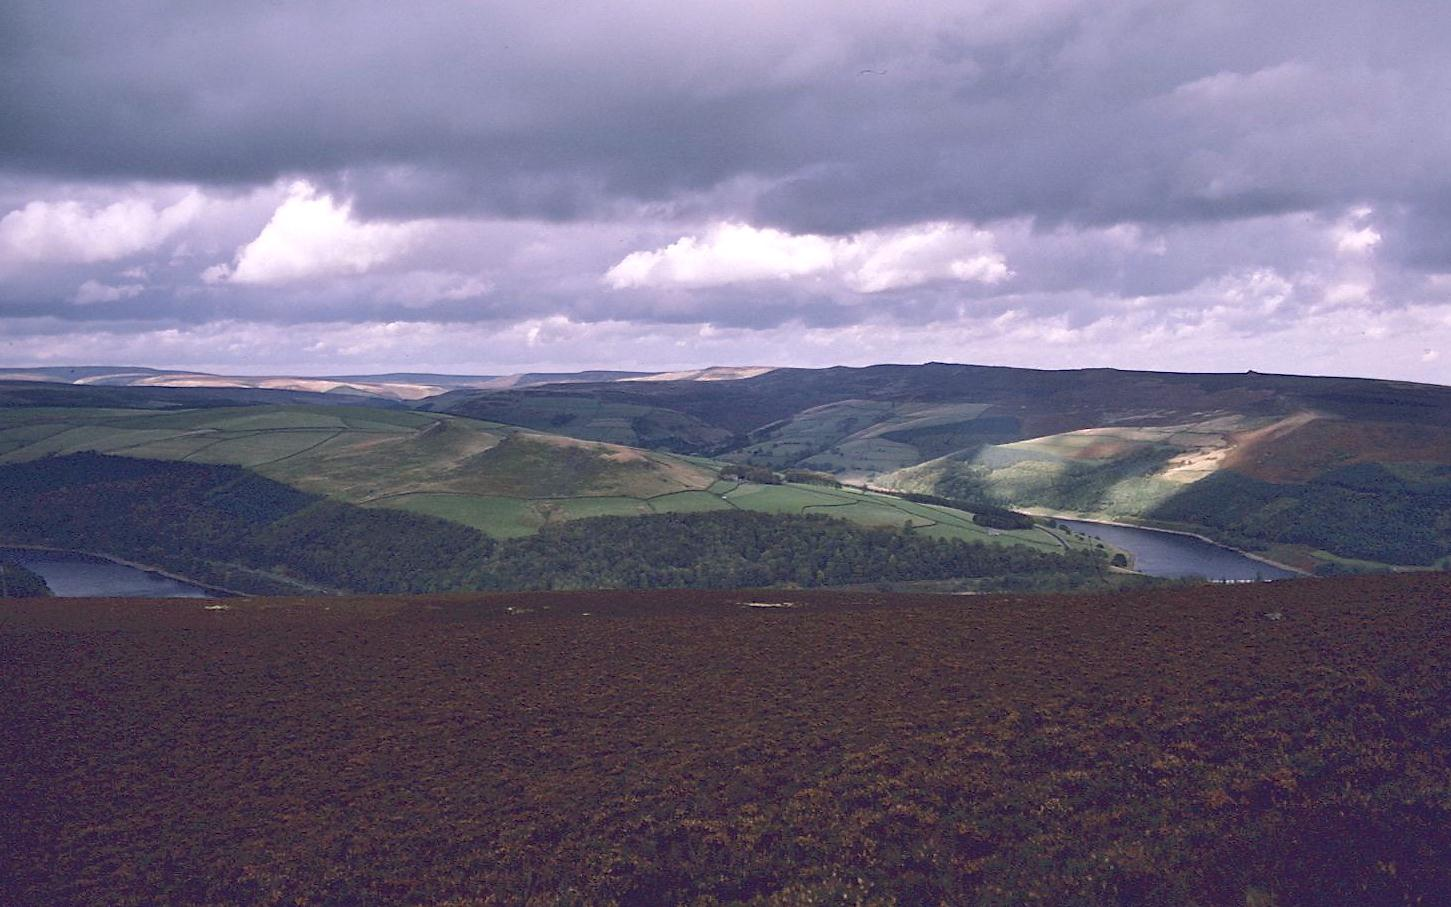 Parts of the Ladybower Reservoir as seen from the summit of Win Hill.